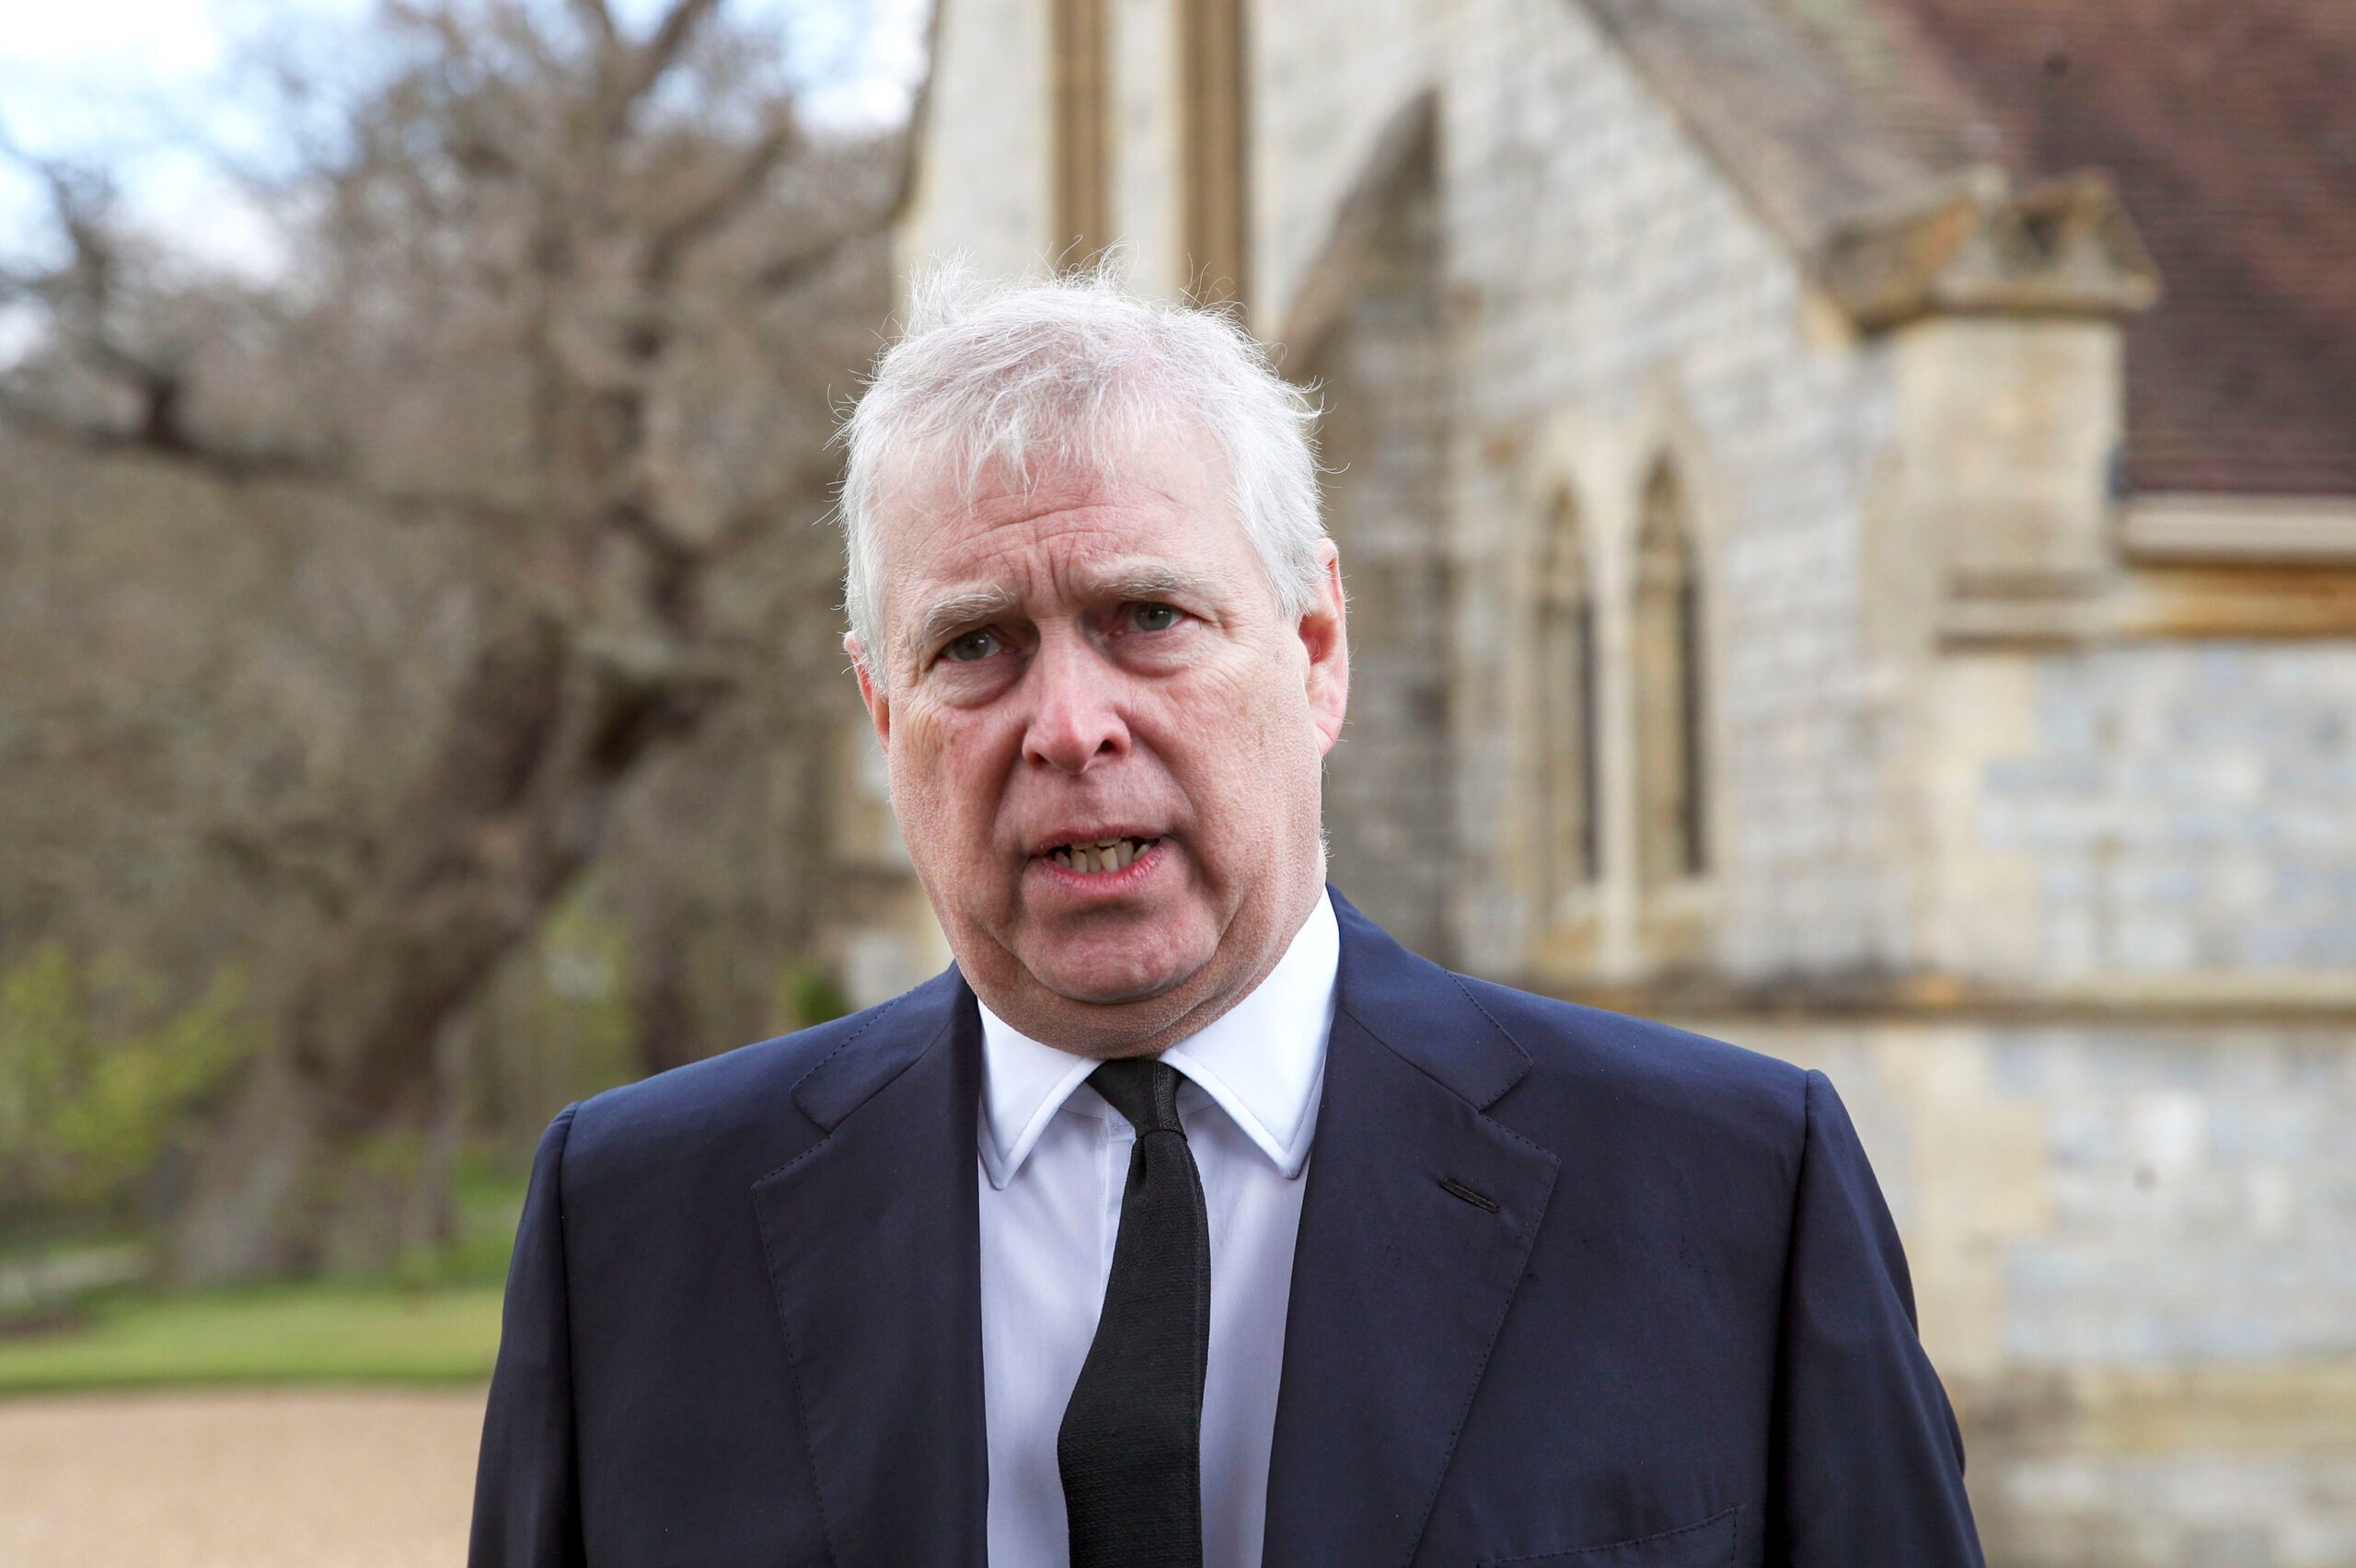 Prince Andrew Acknowledges He Faces US Sex Assault Lawsuit - snopes